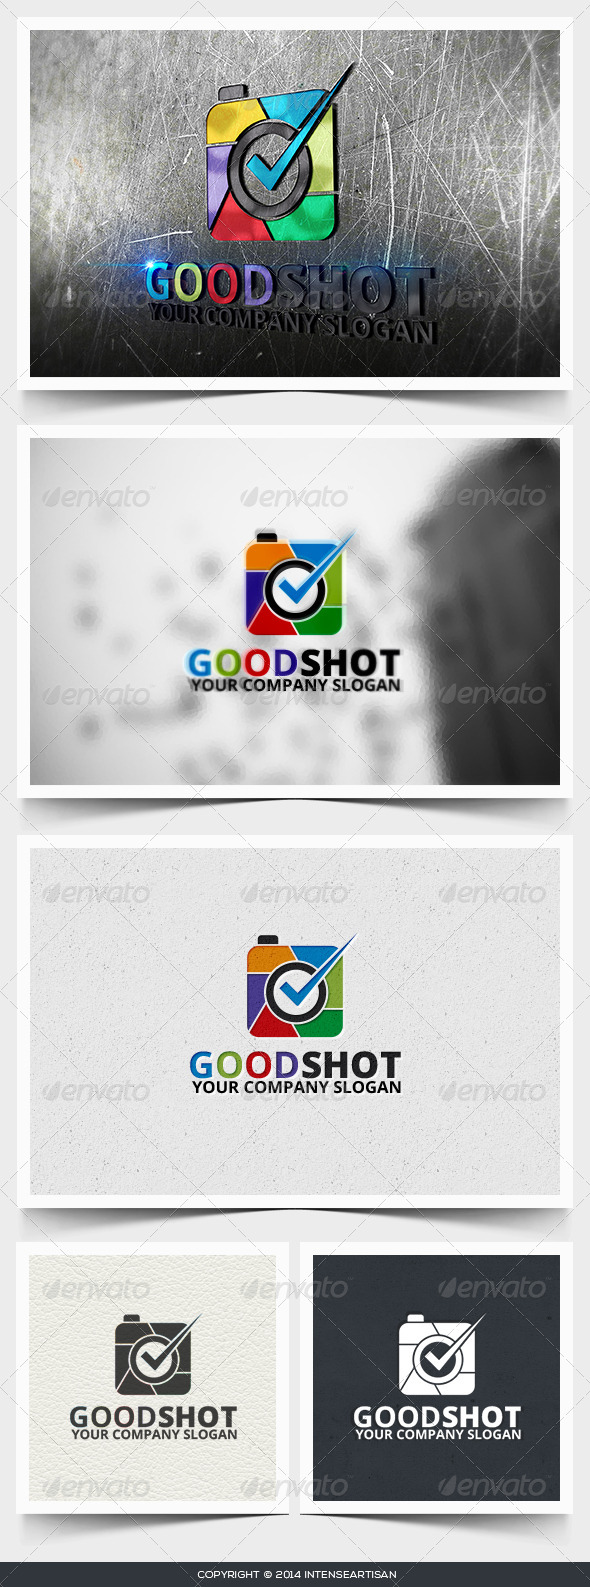 Good Shot Logo Template - Objects Logo Templates